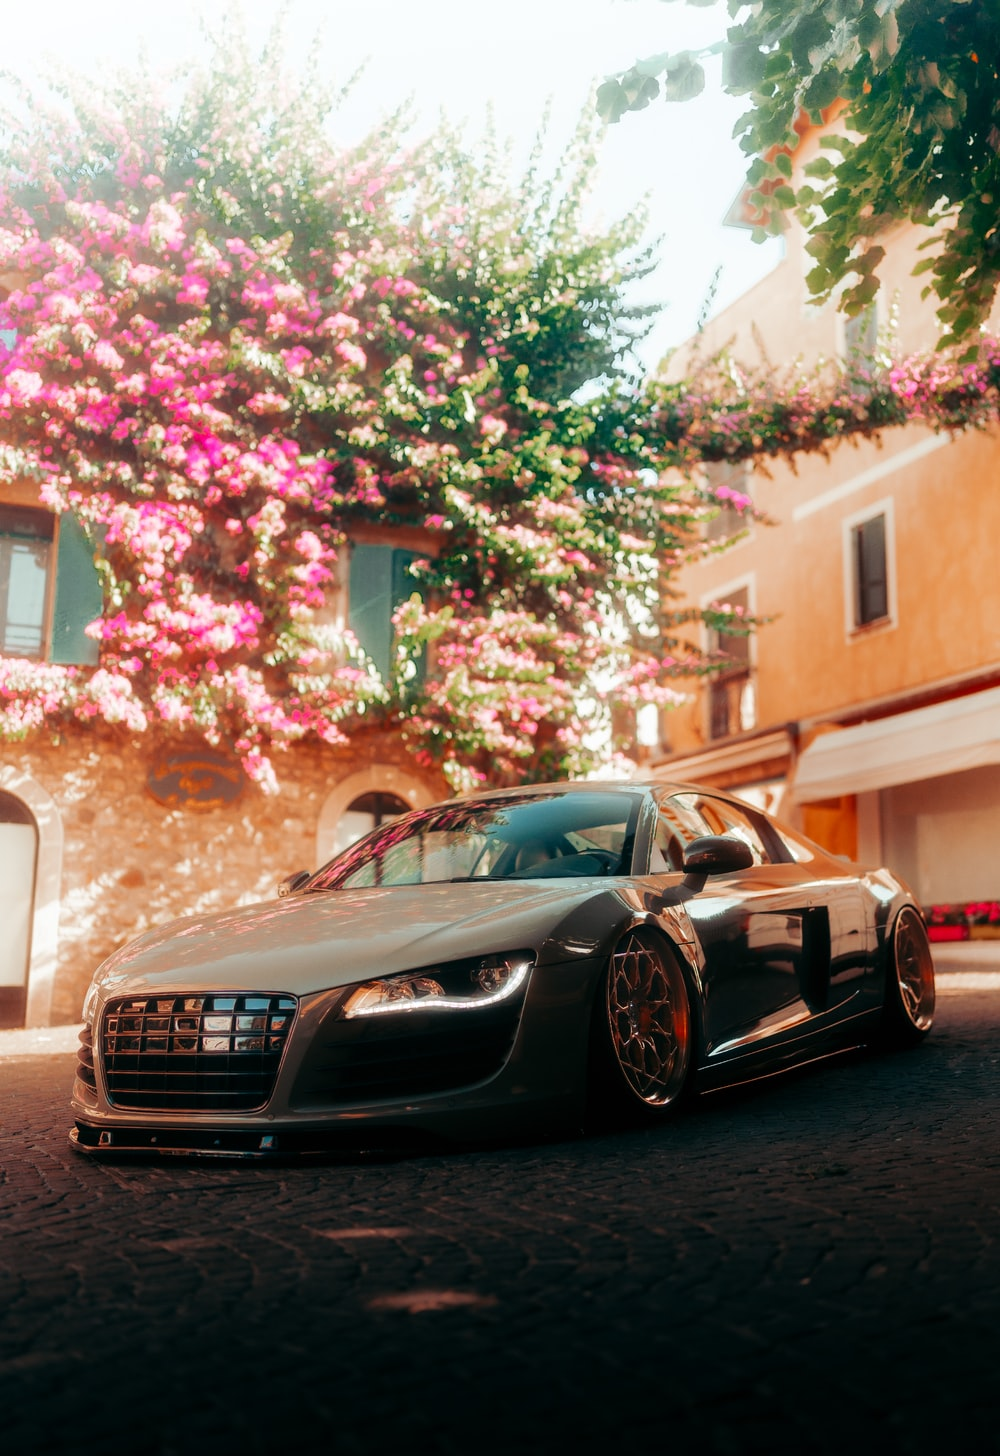 black bmw m 3 coupe parked near pink and white flower tree during daytime